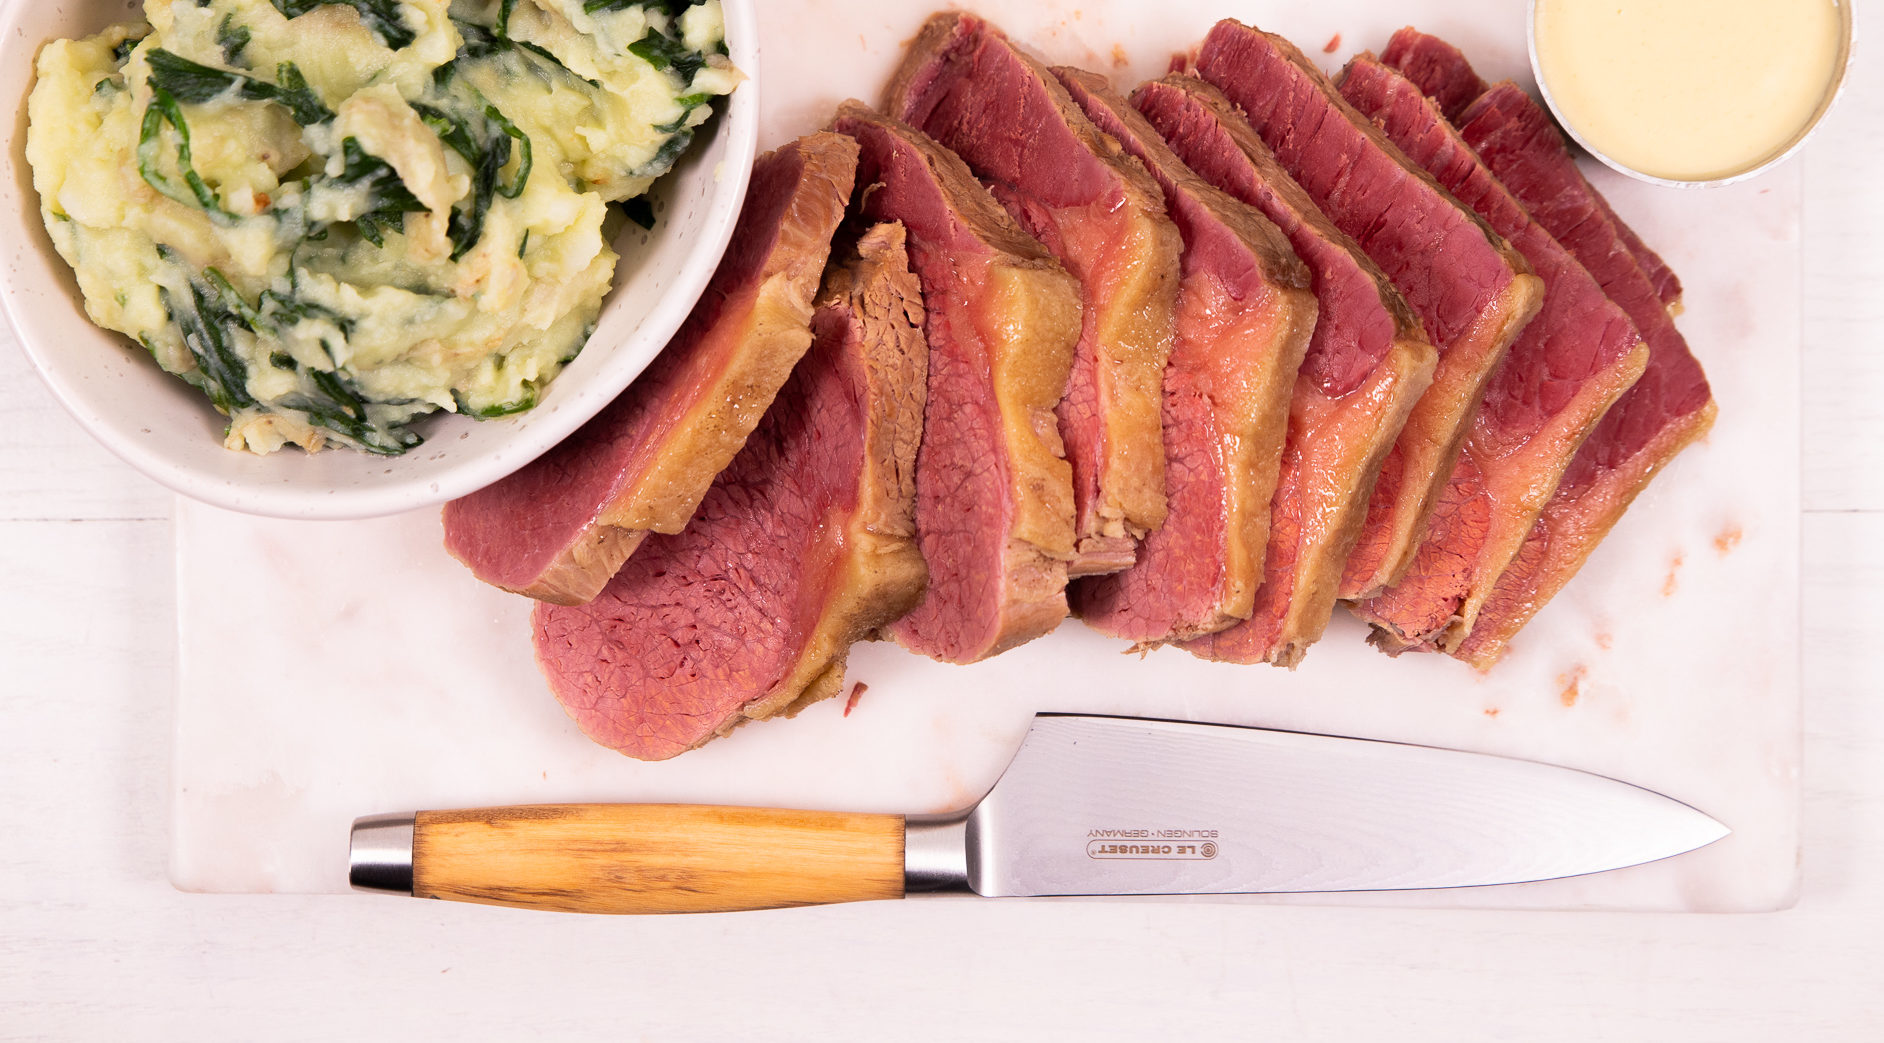 Sliced corned beef on a chopping board with spinach mash